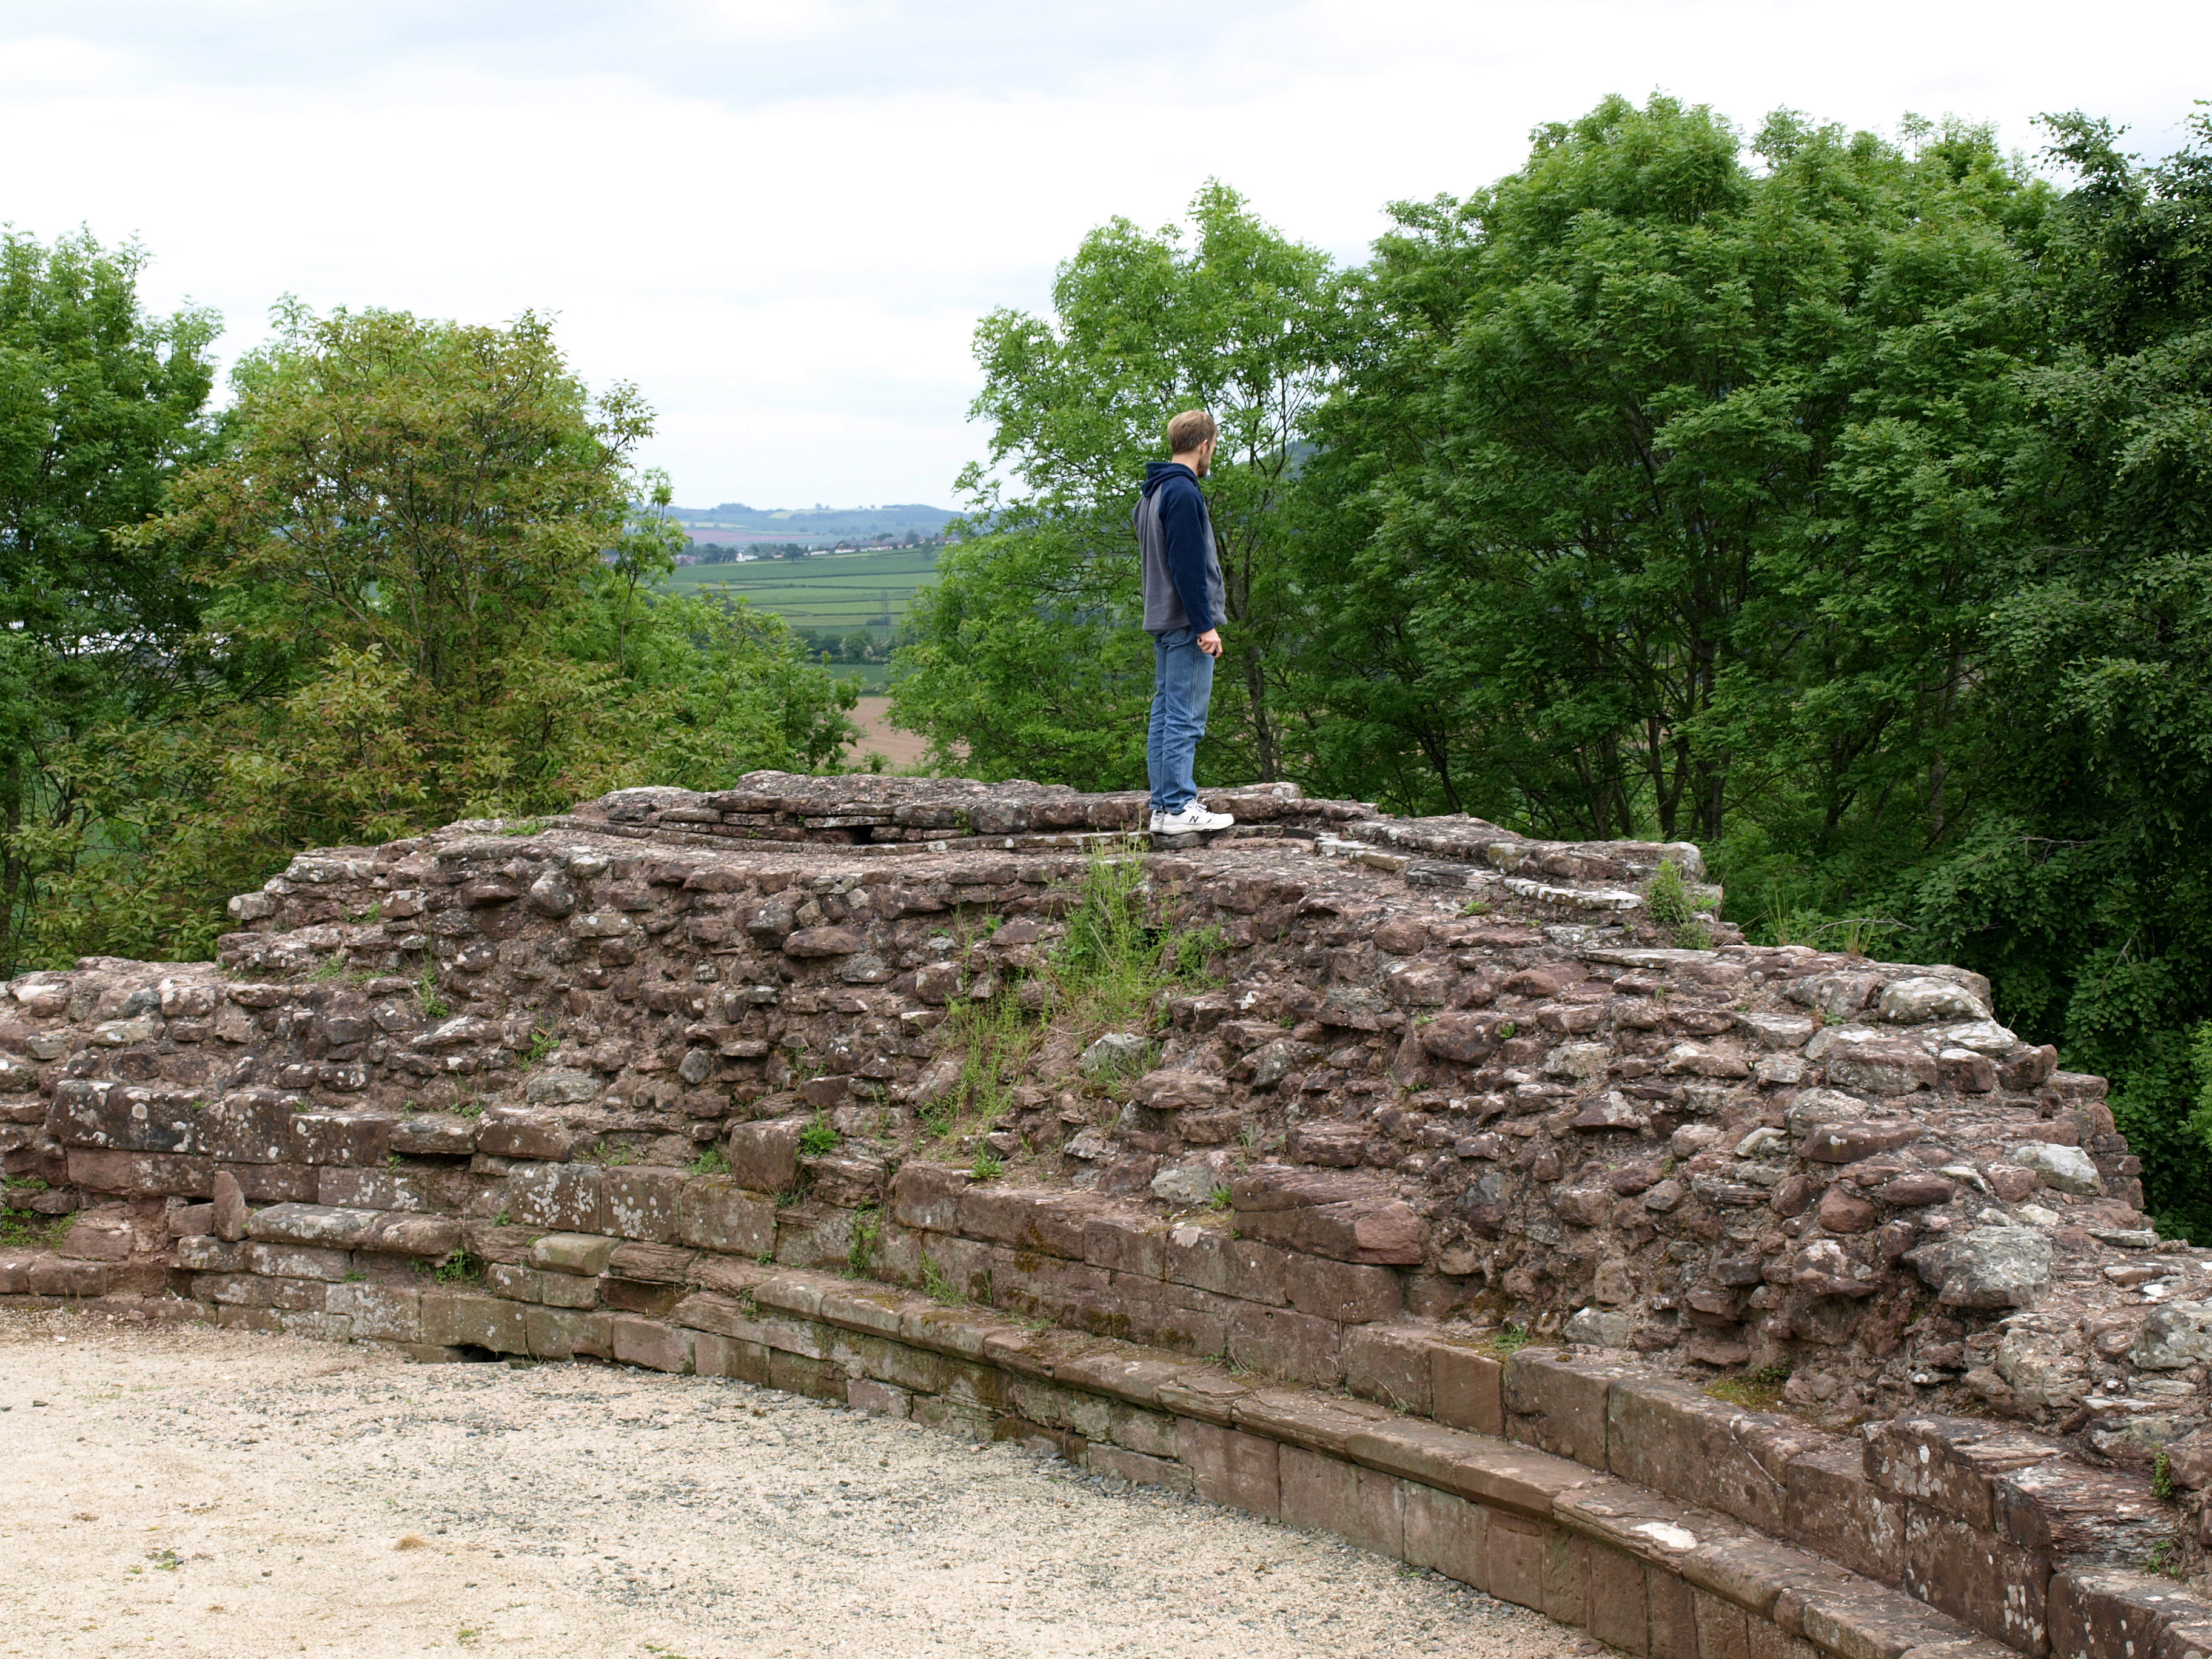 Alec Atop the Barbican Walls